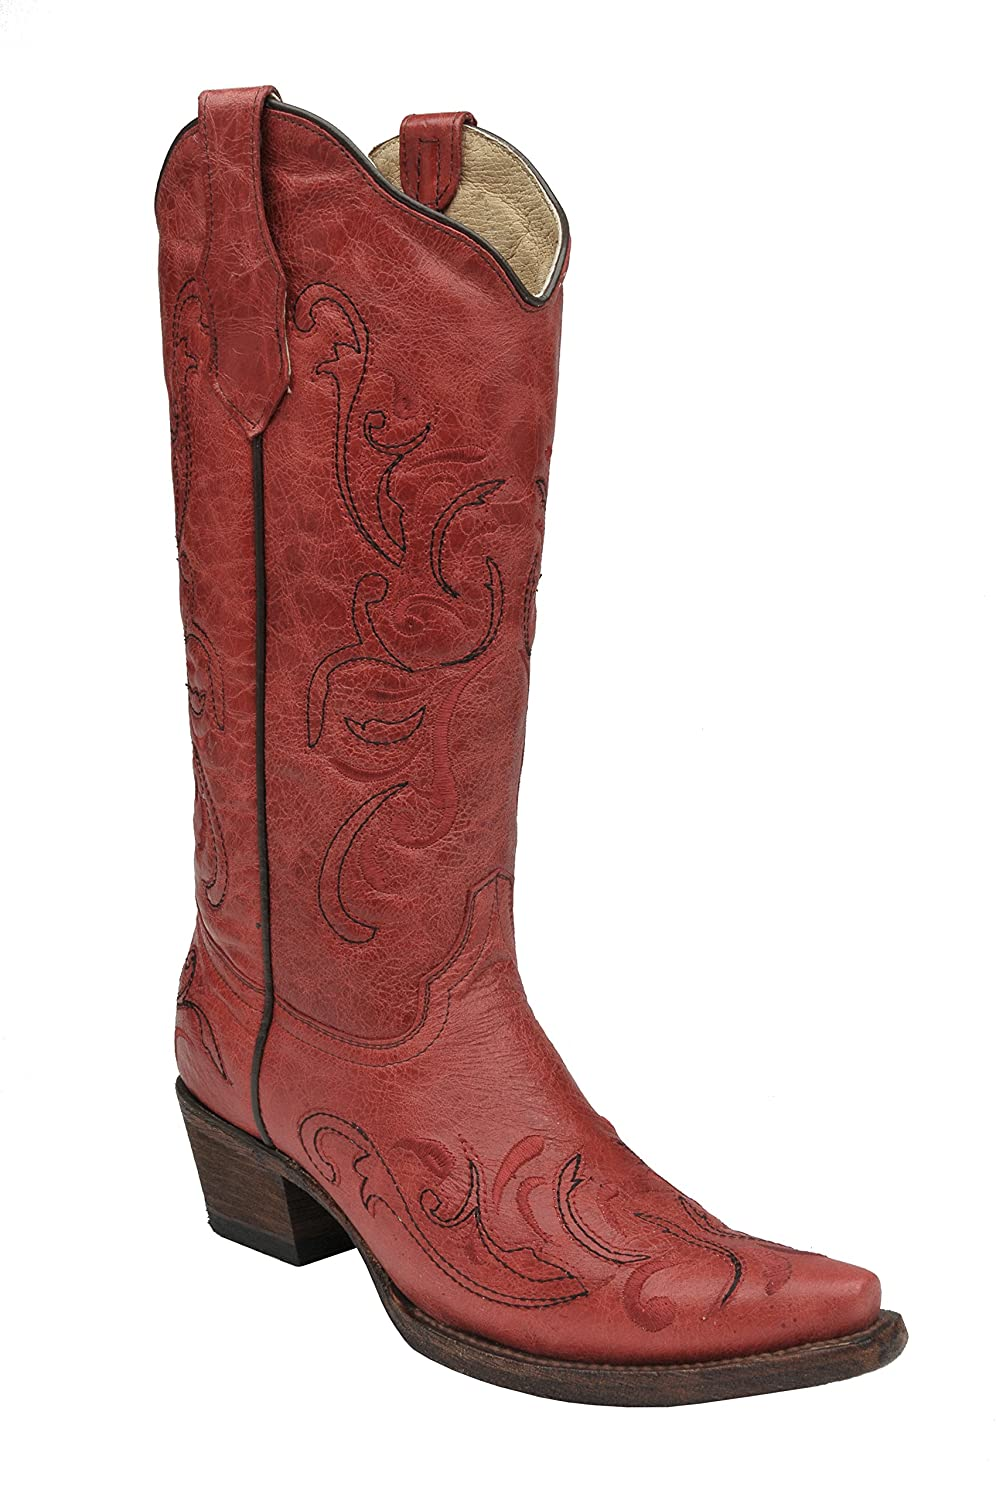 Corral Circle G Women's Red Scroll Embroidery Designed Red Leather Cowgirl Boots B01F31YVPU 7.5 B(M) US|Red